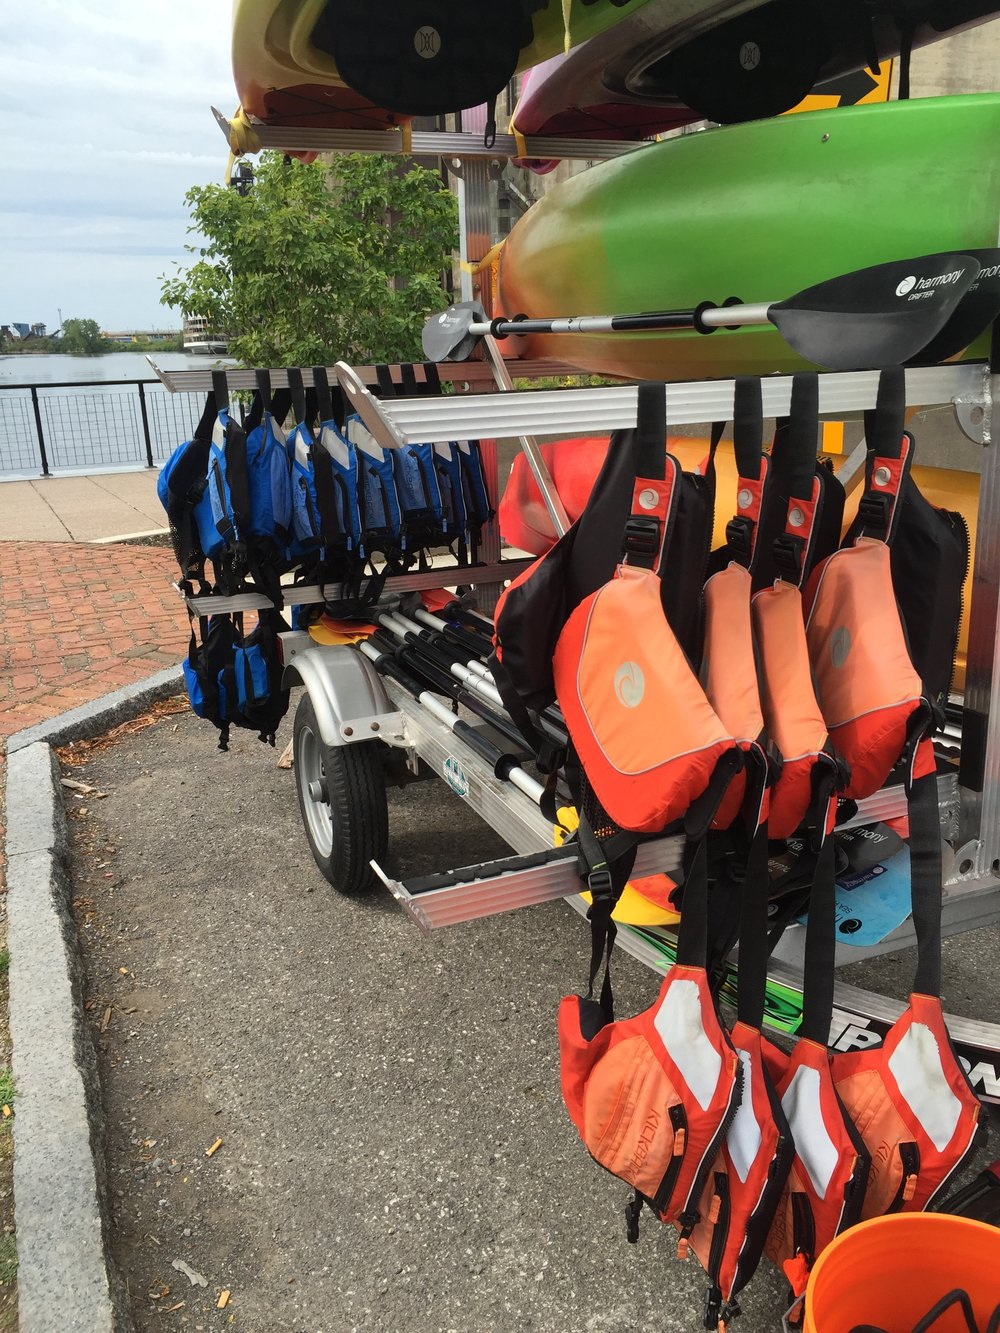 Rent kayaks next to the launch or from the store a few yards away.